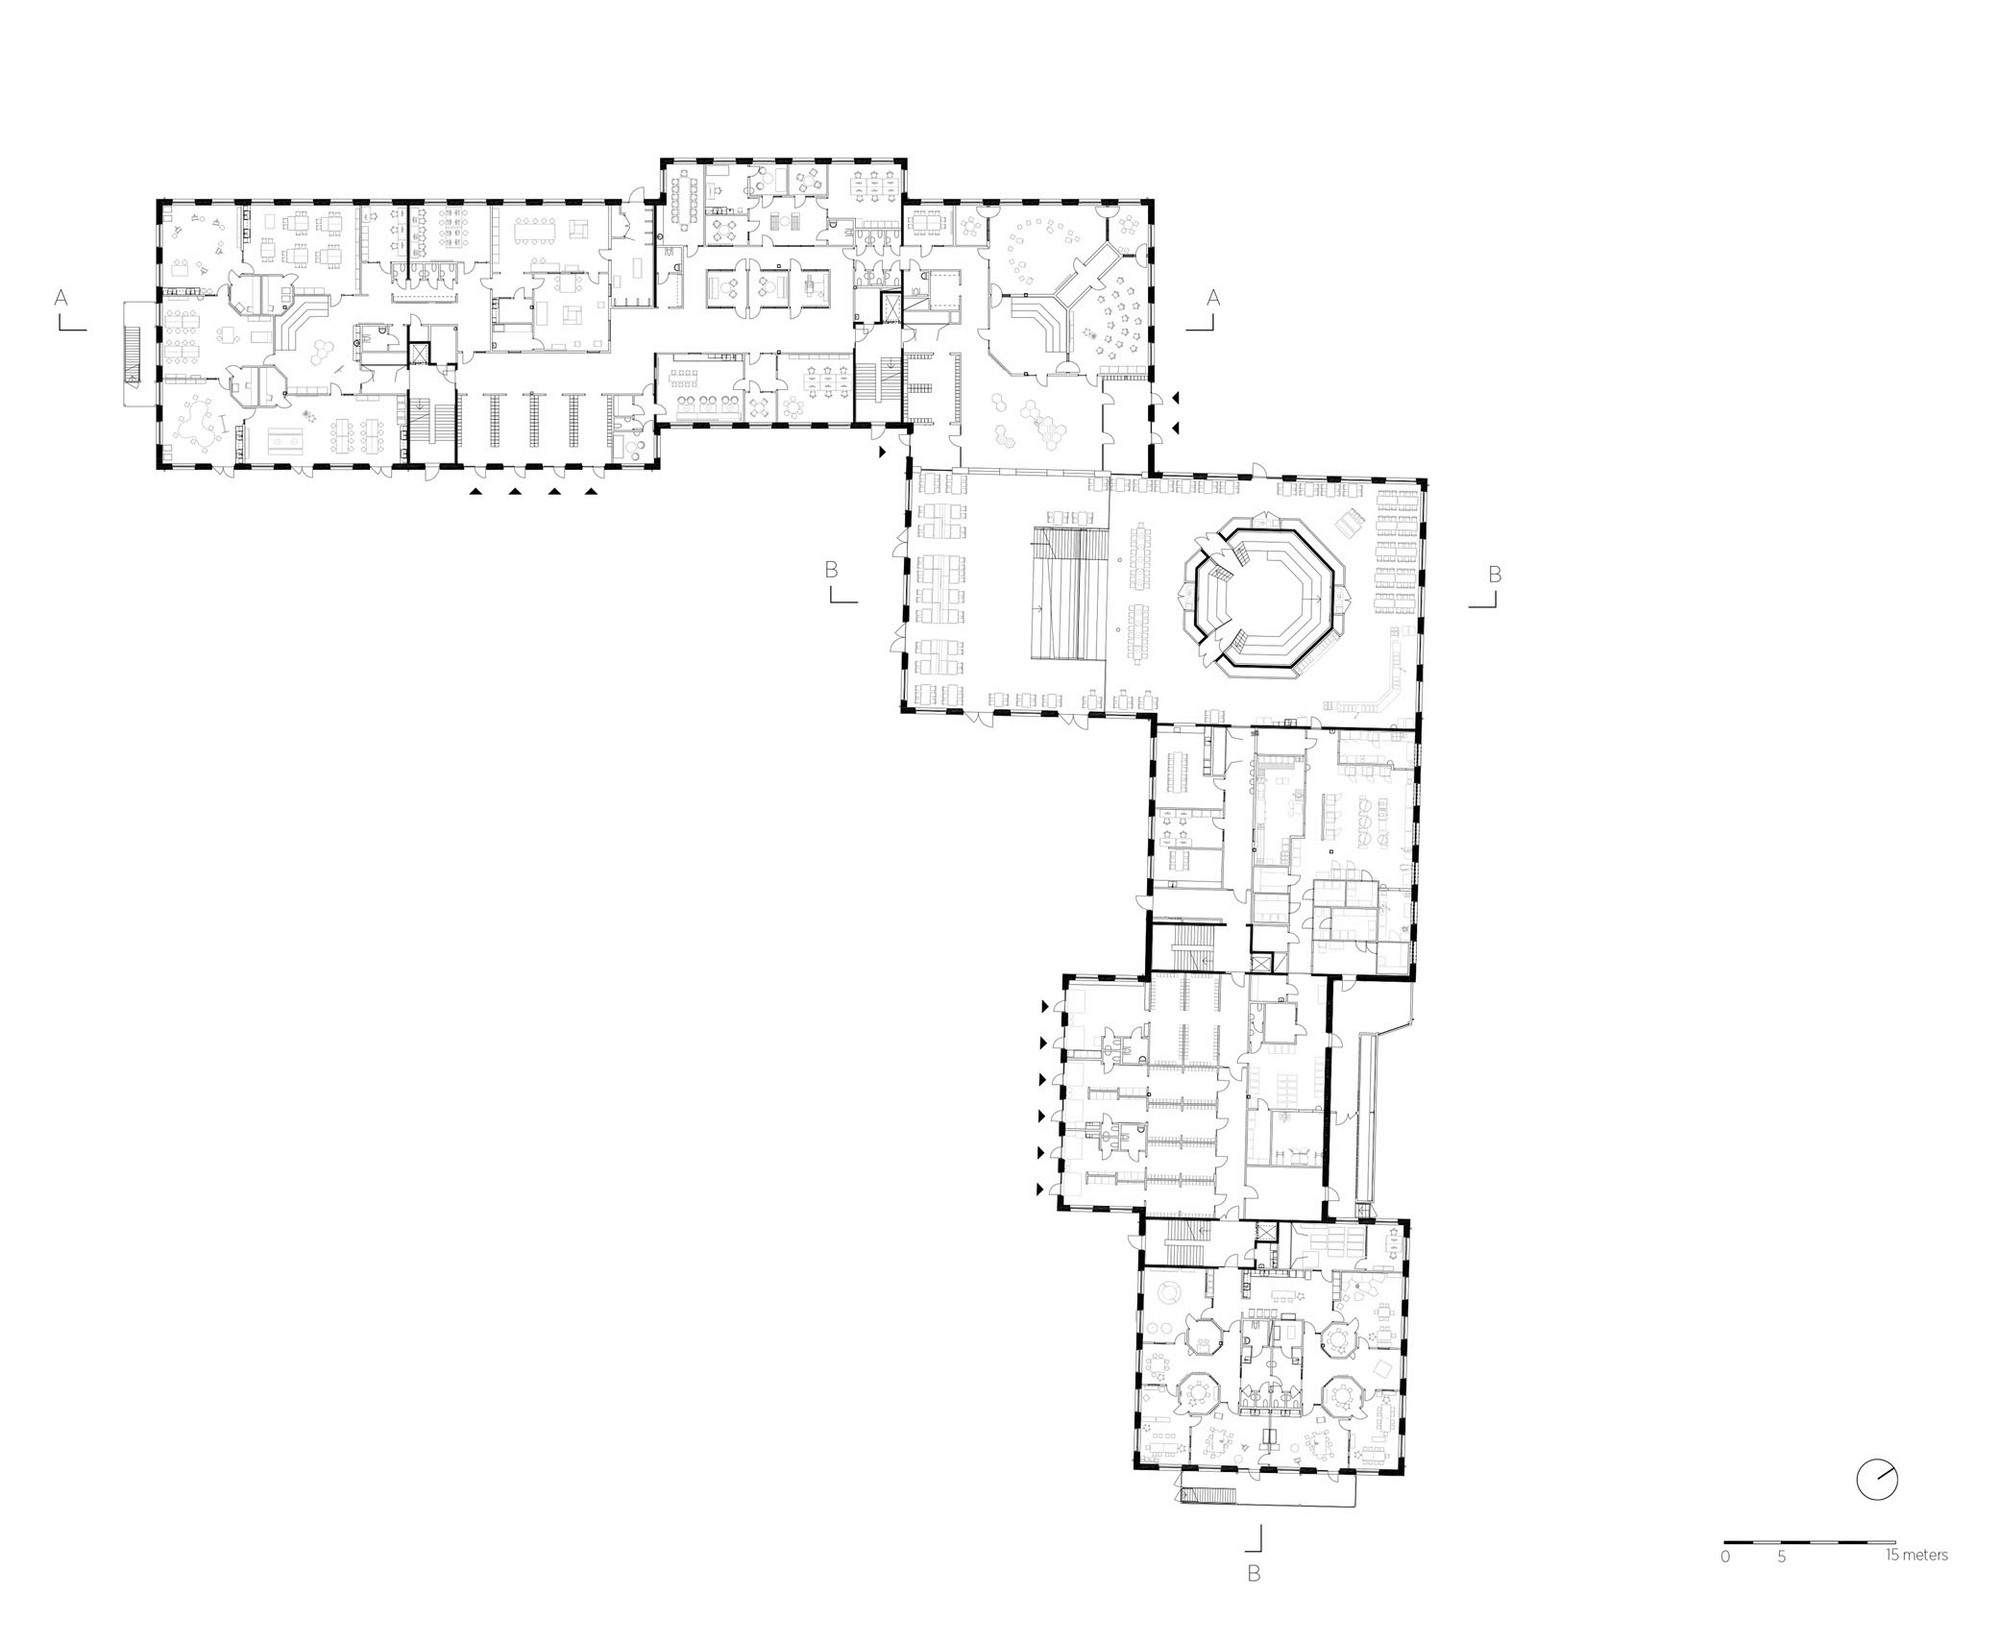 8_Ground_Floor_1_500_A3_Tiundaskolan_School.jpg